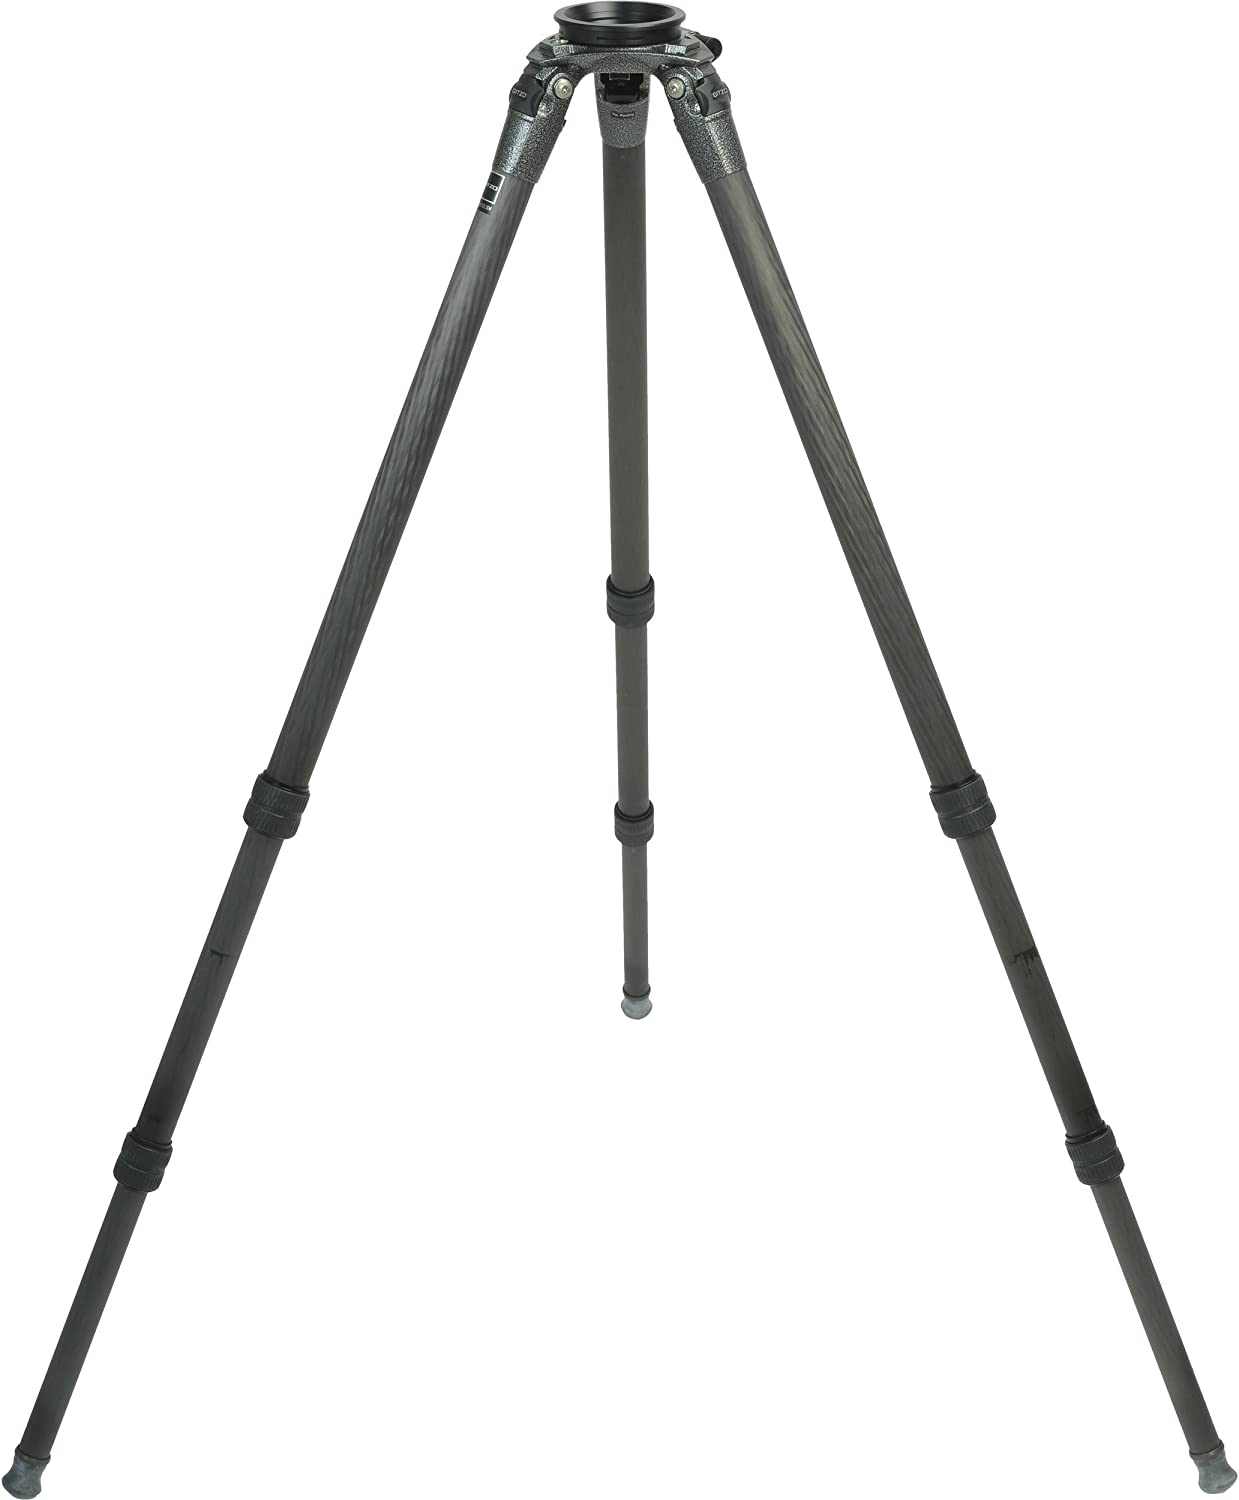 Gitzo Series 3 Systematic 3 Section Video Tripod GT3532LSV